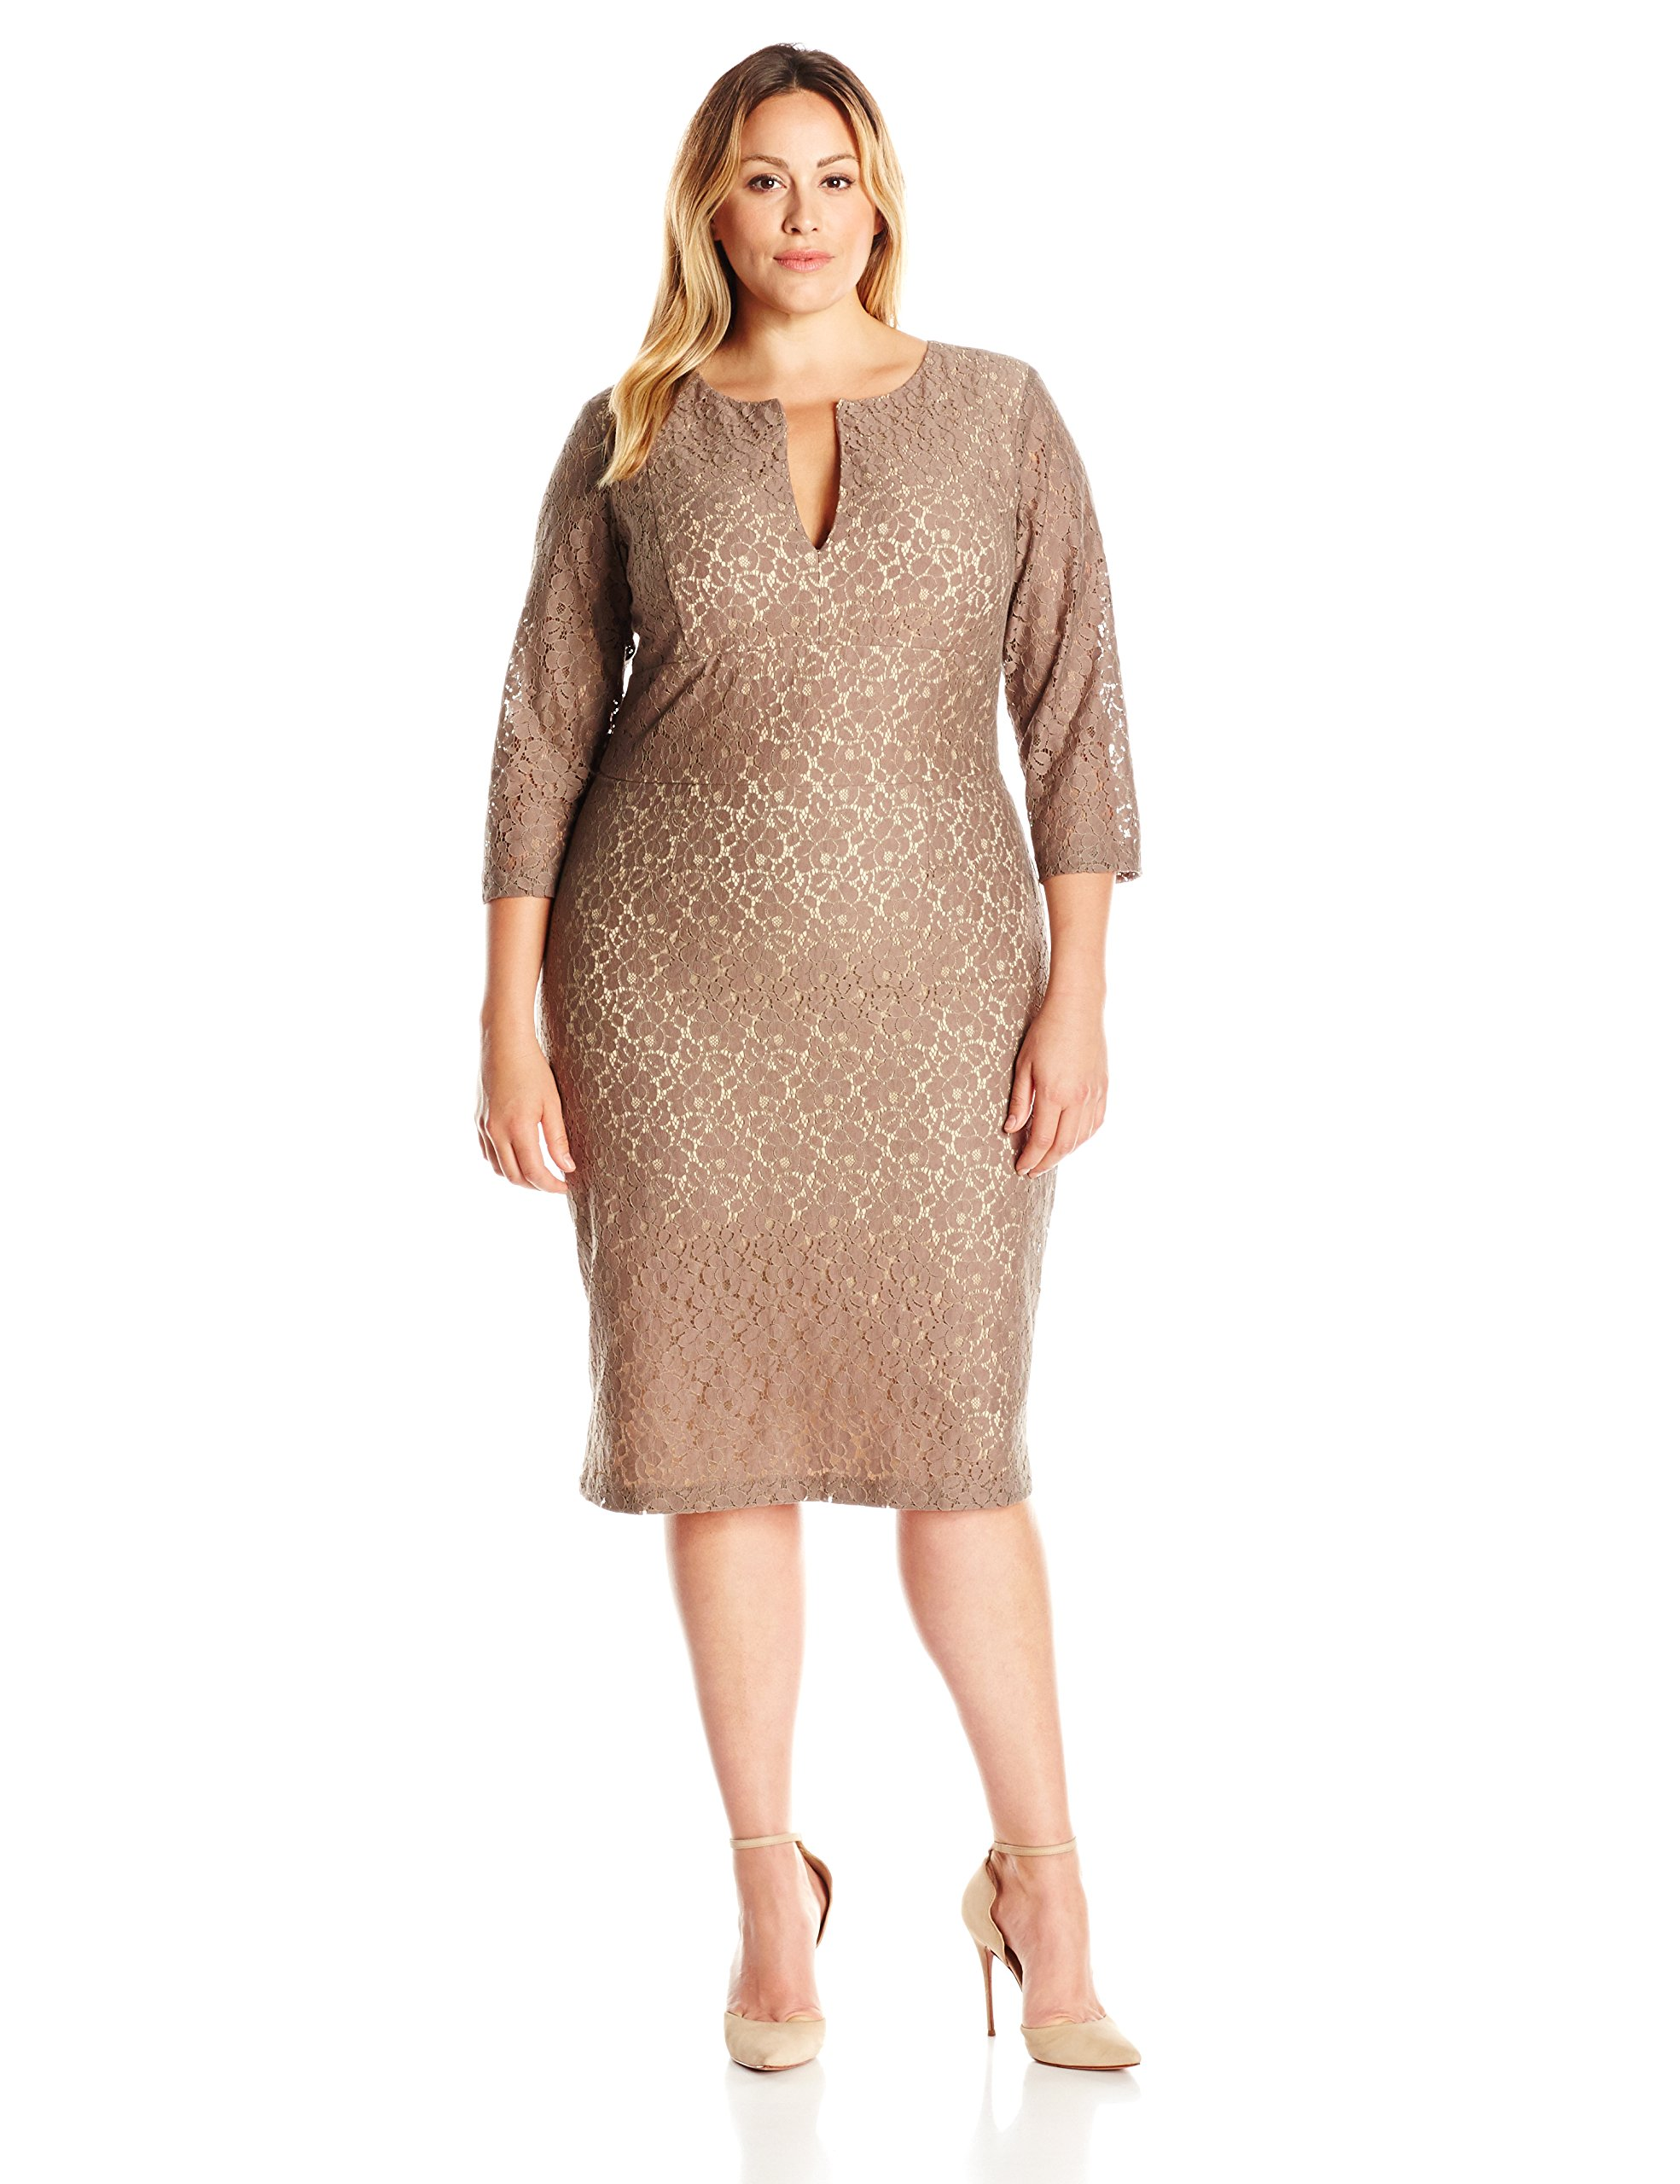 Single Dress Women's Plus Size Lace Meg Dress, Truffle/Nude Long Sleeve, 1X